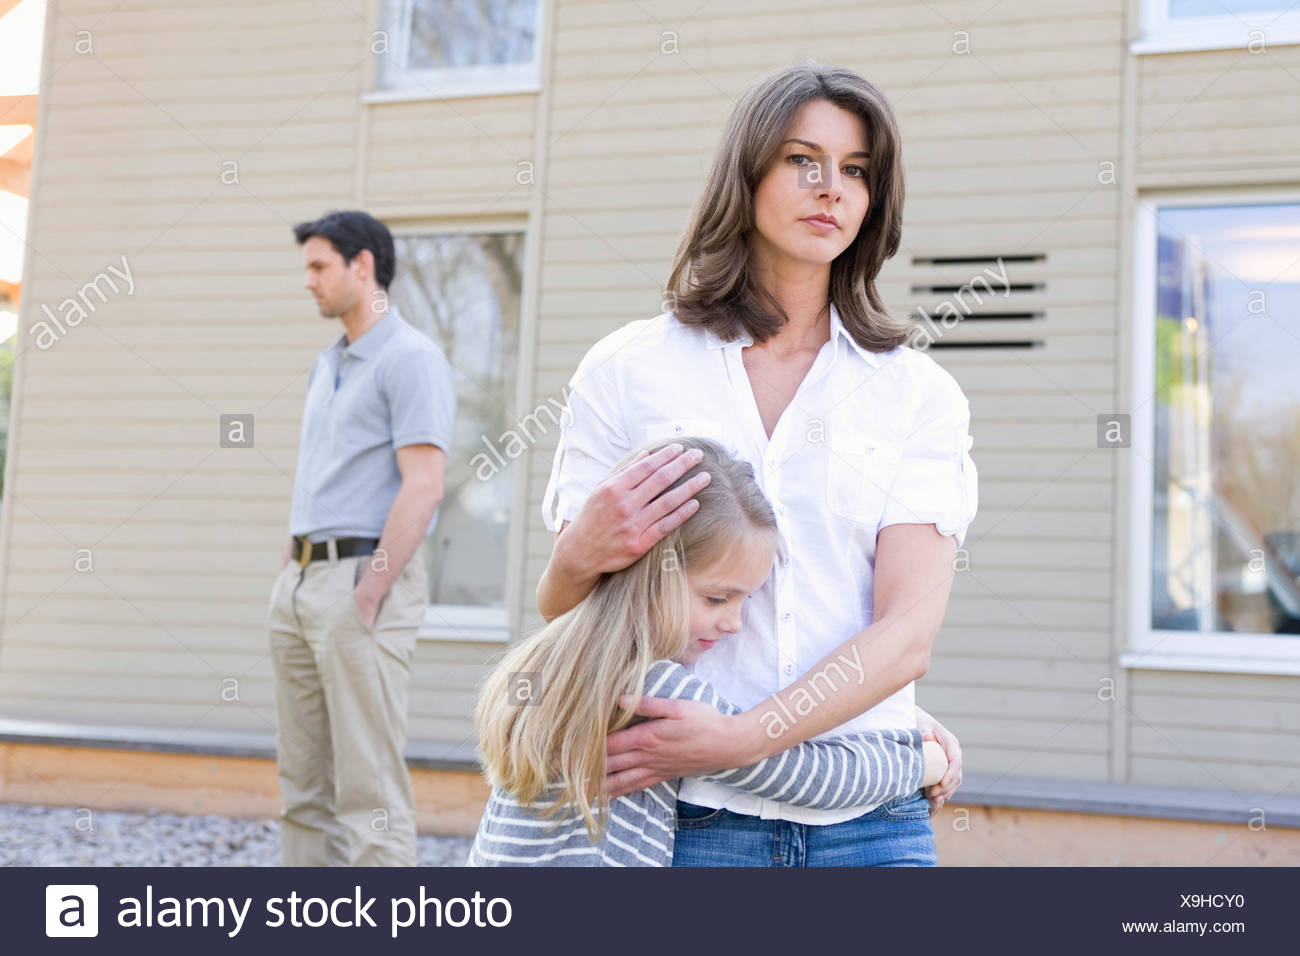 Portrait mother hugging daughter while father stands distance - Stock Image